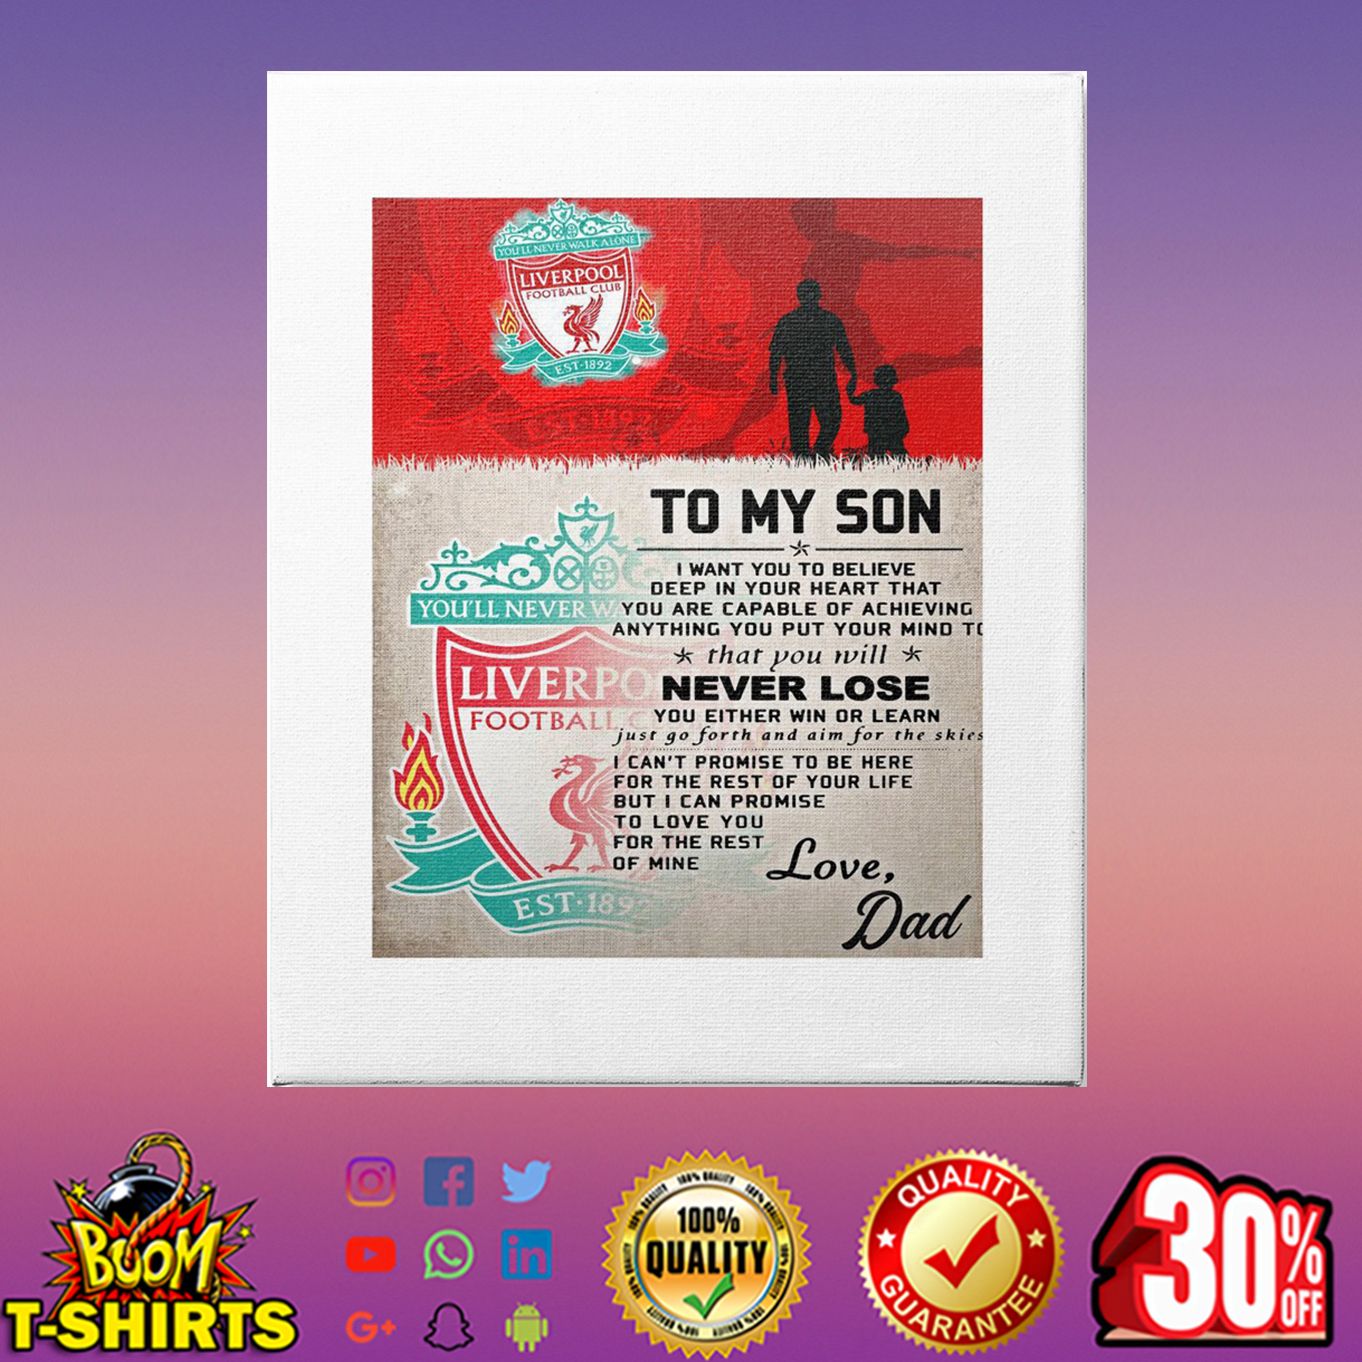 To my son love Dad Liverpool canvas